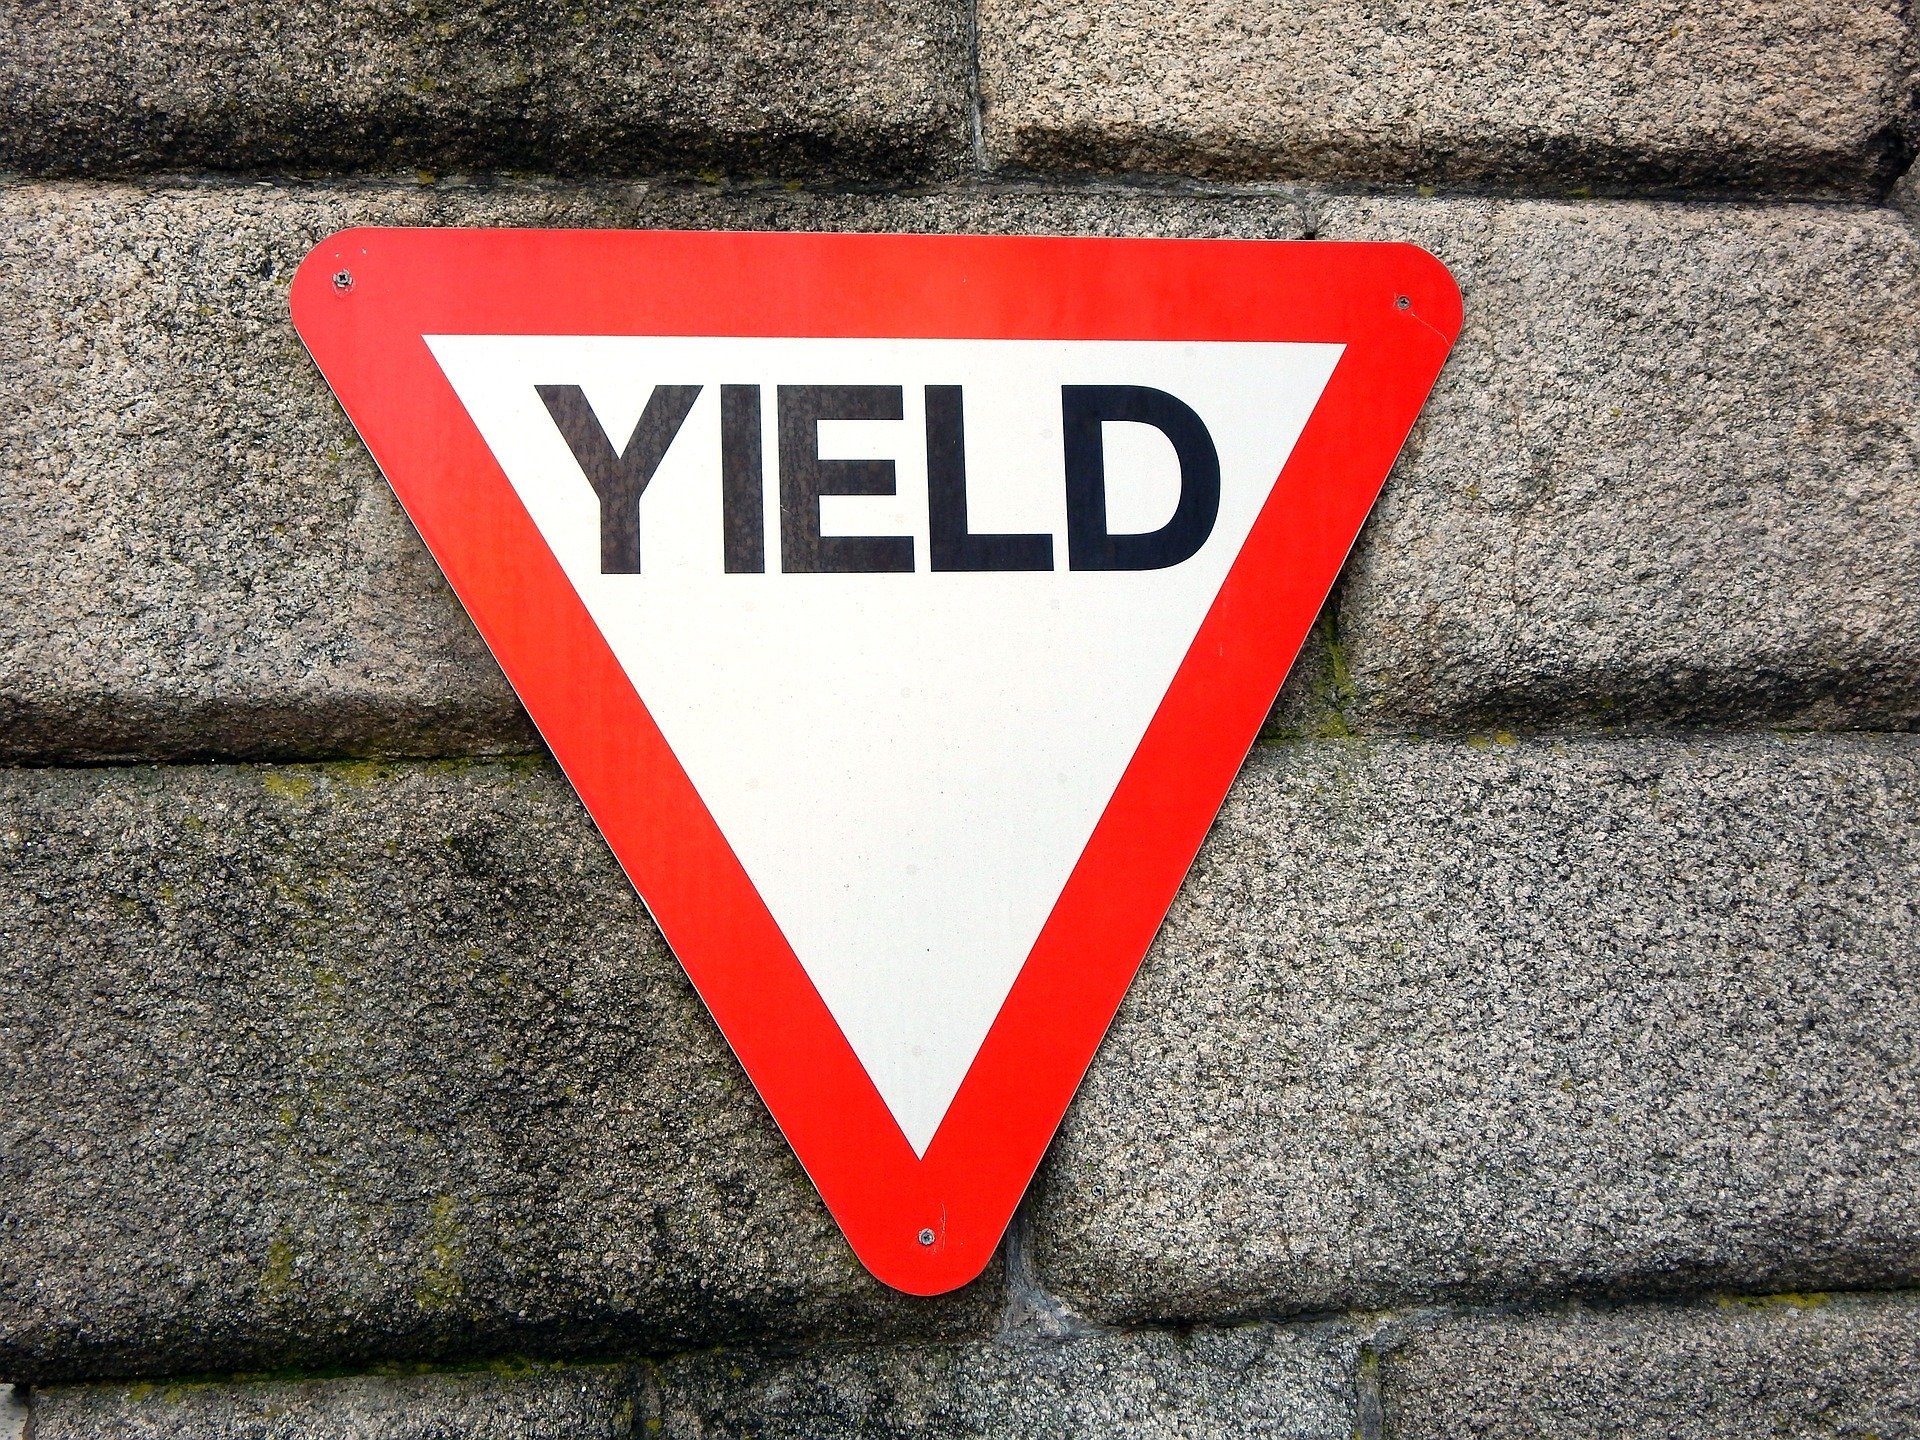 The Wall Street Journal – Lookahead: Yield Signs